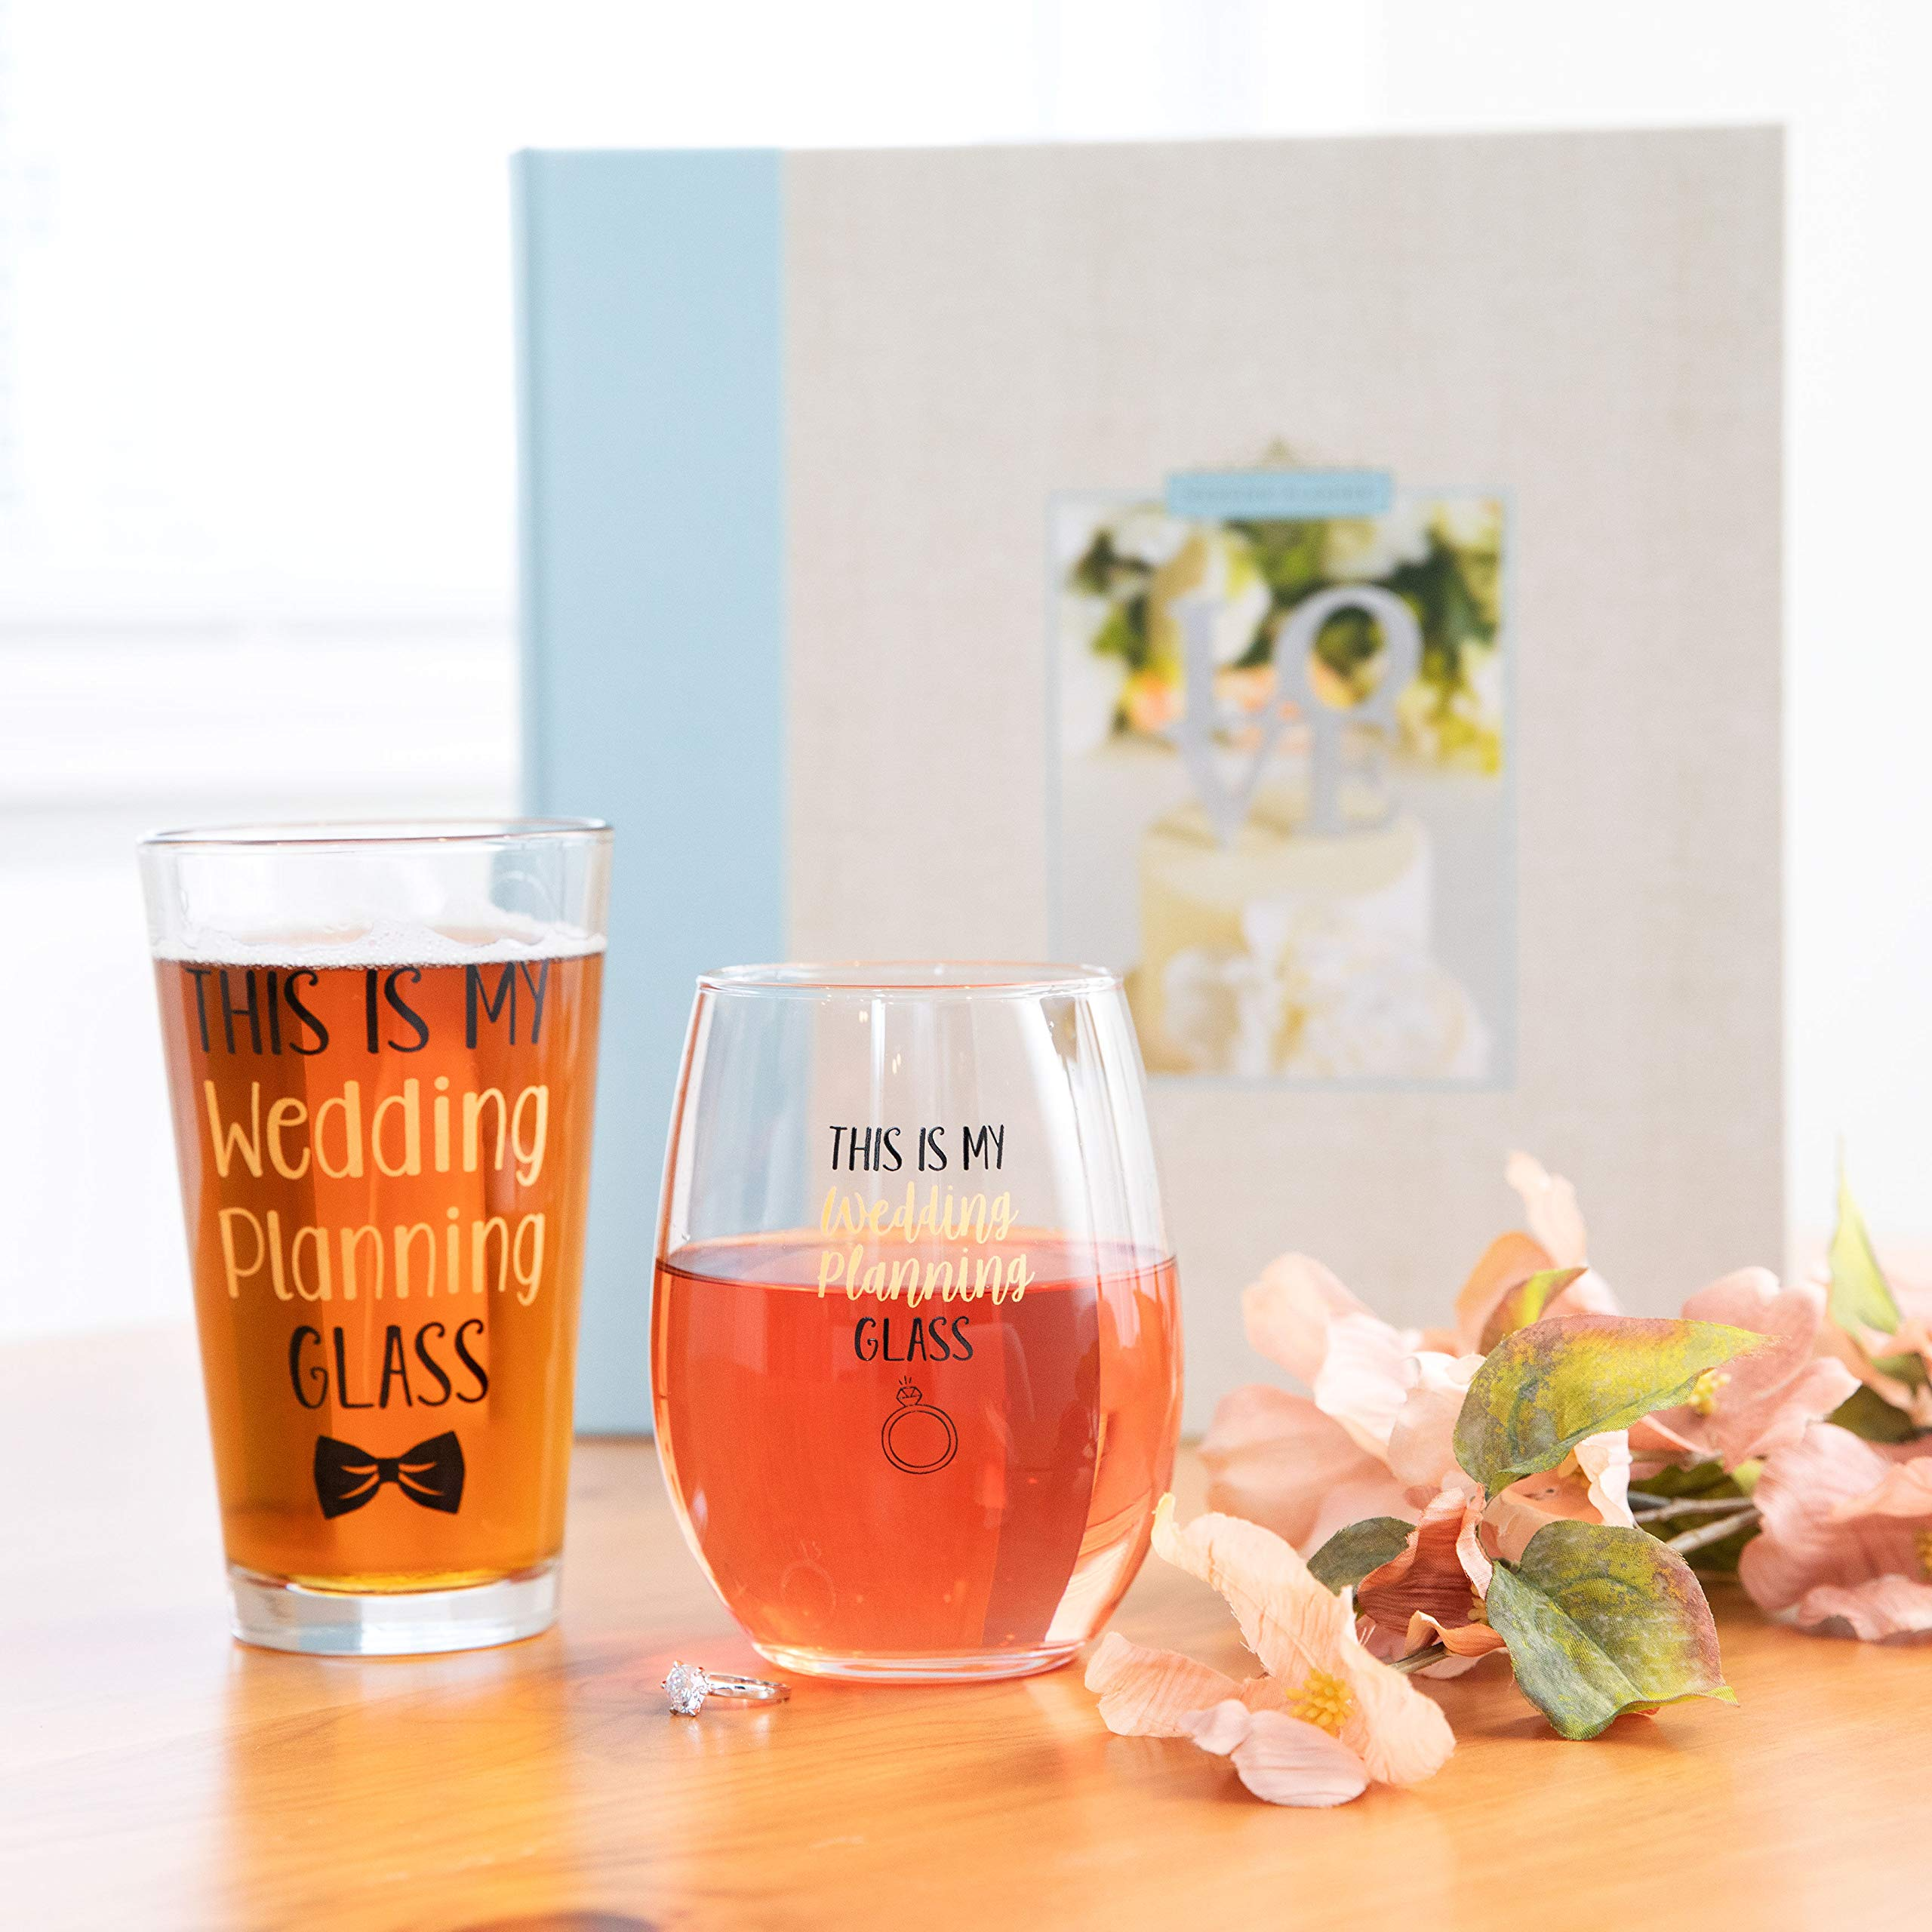 This Is My Wedding Planning Glass Set - Engagement Gift Set for the Couple - Mr & Mrs Gift - Bride and Groom To Be - 16 oz. Pint Glass, 21 oz. Wine Glass (Set of 2) by Gelid (Image #2)